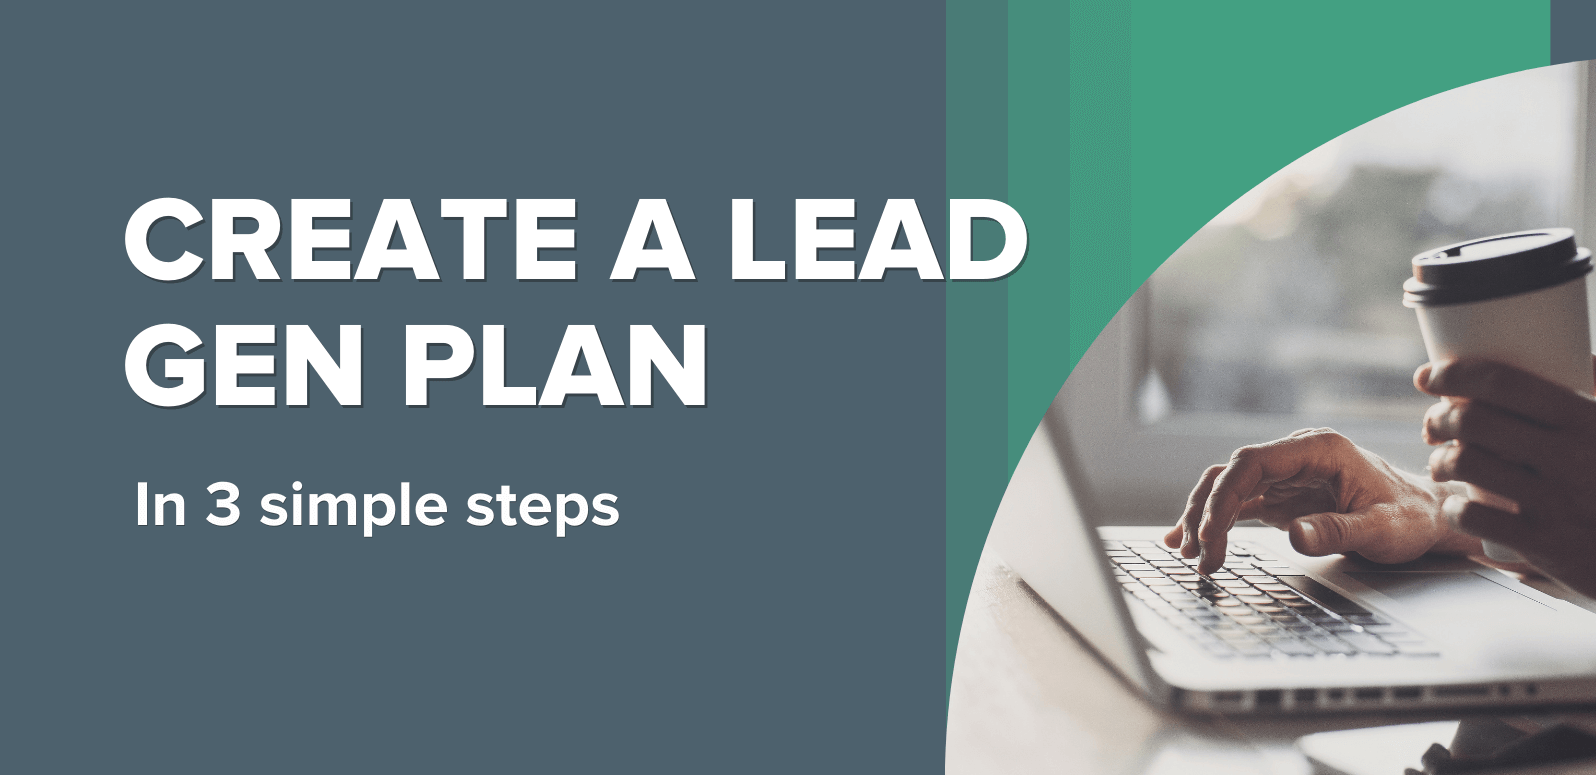 Not Sure How to Structure Your Lead Gen Plan? Here's a Simple Strategy You Can Follow